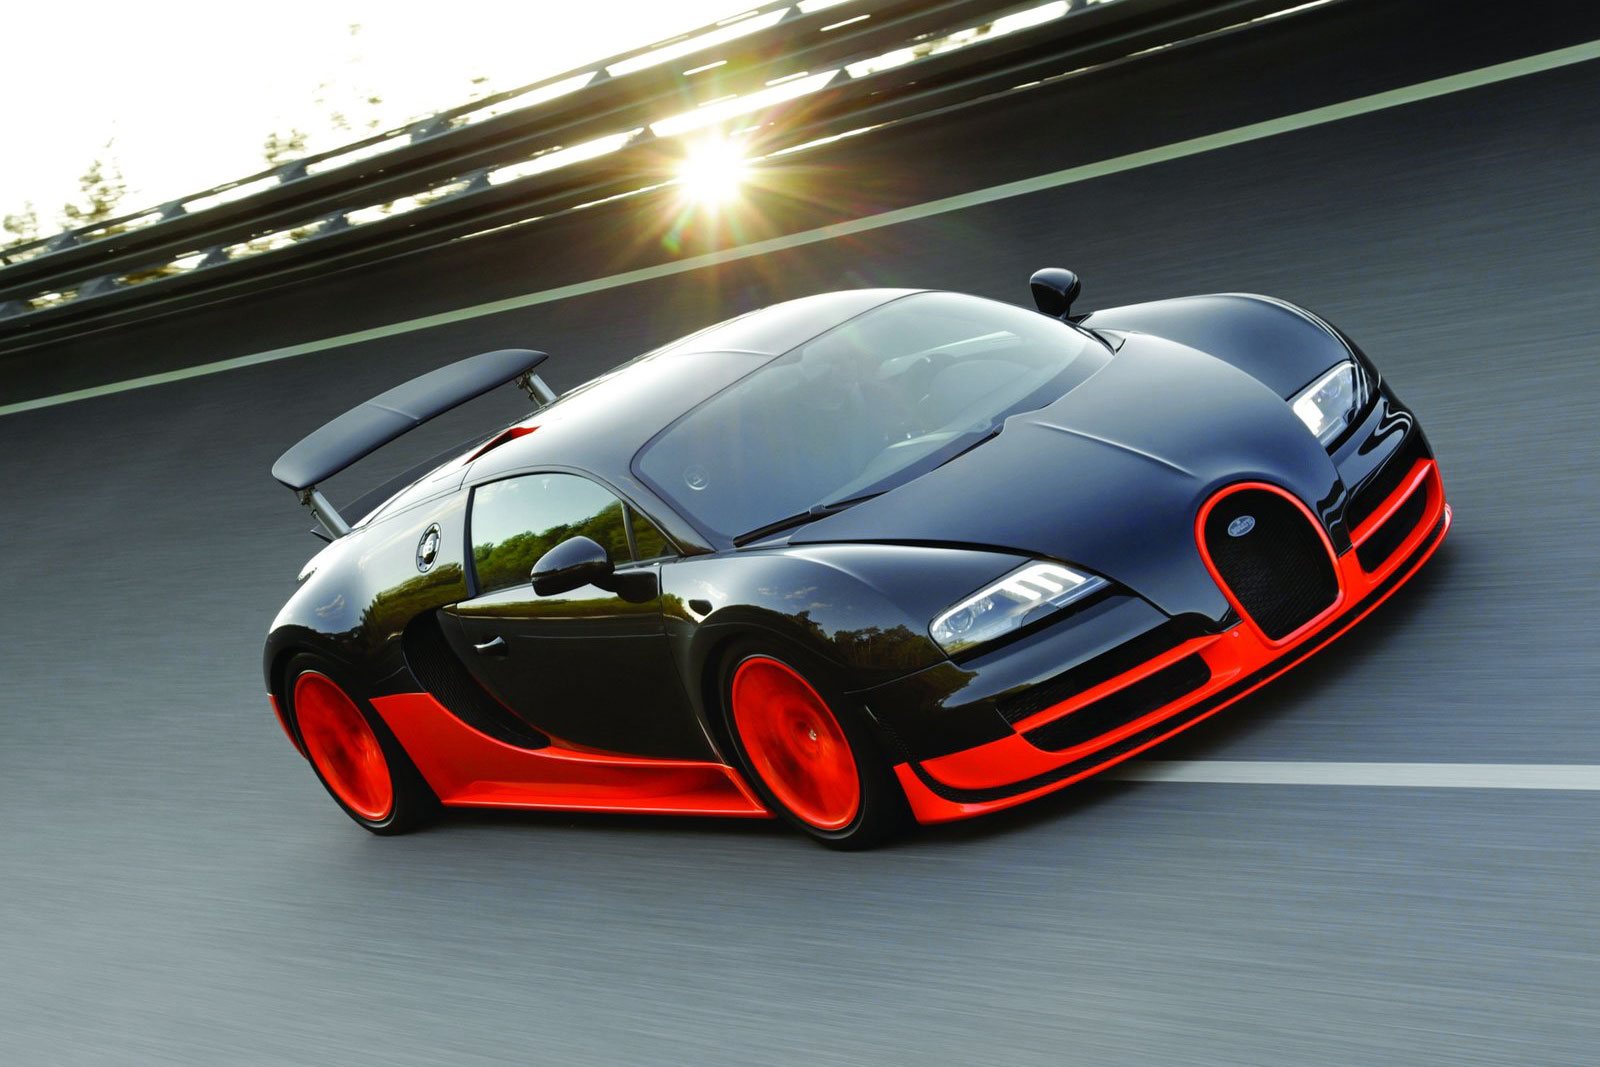 Bugatti working on New Veyron with 1,600HP - ForceGT.com